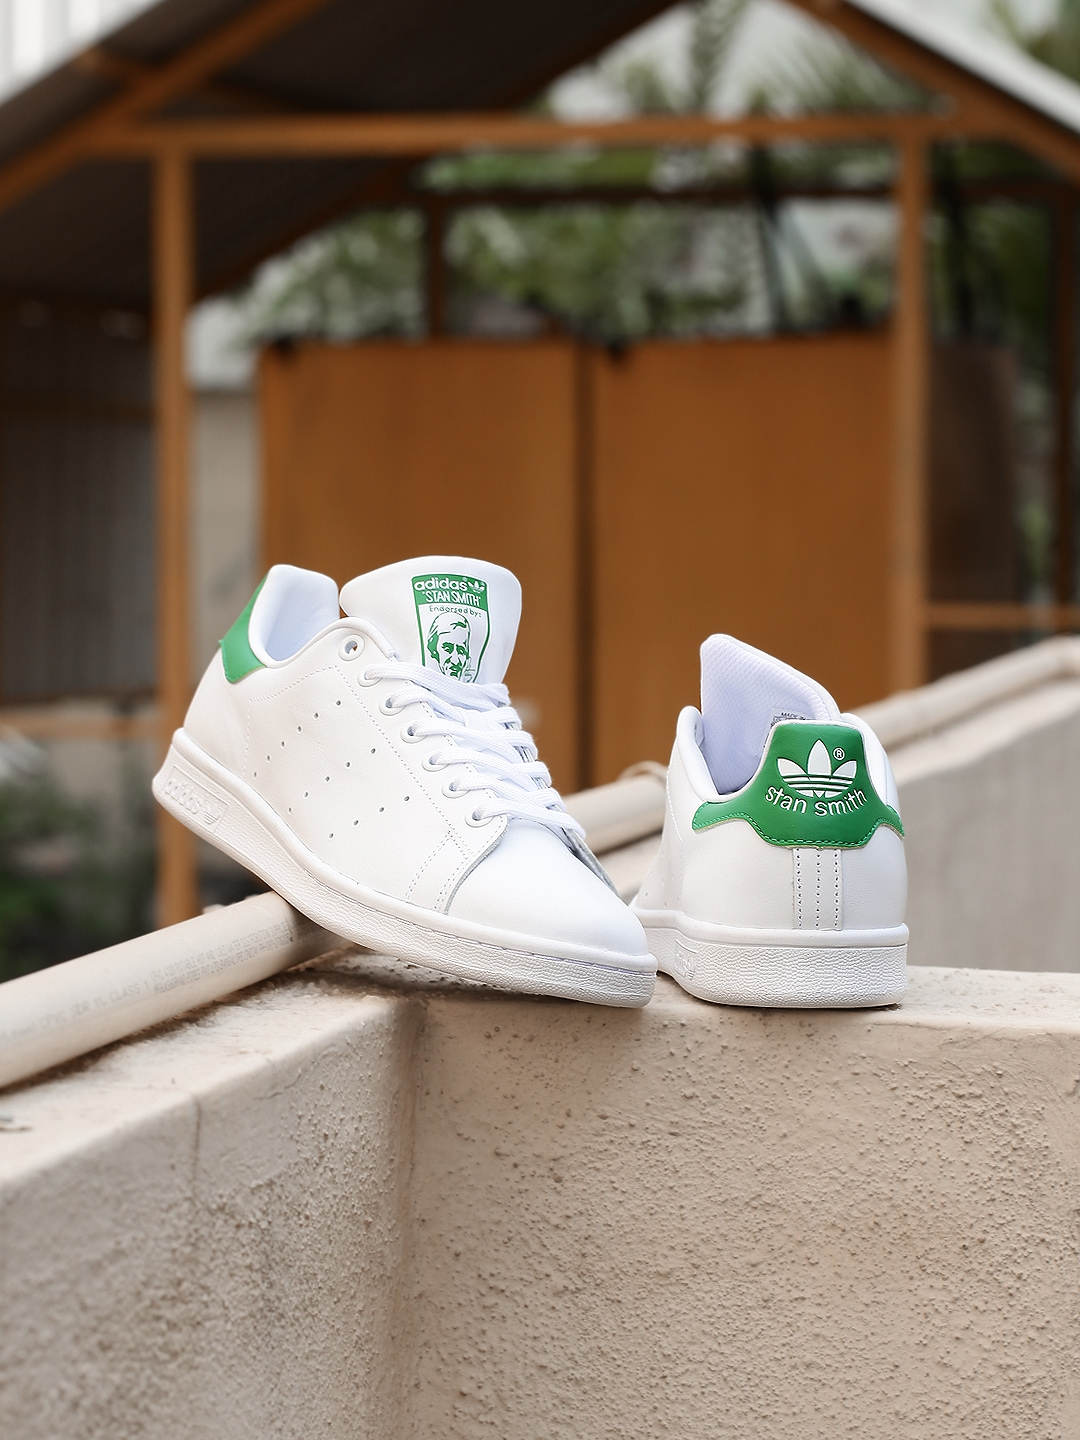 Buy ADIDAS Originals Women White Leather Stan Smith Sneakers ... 72c7328aefe